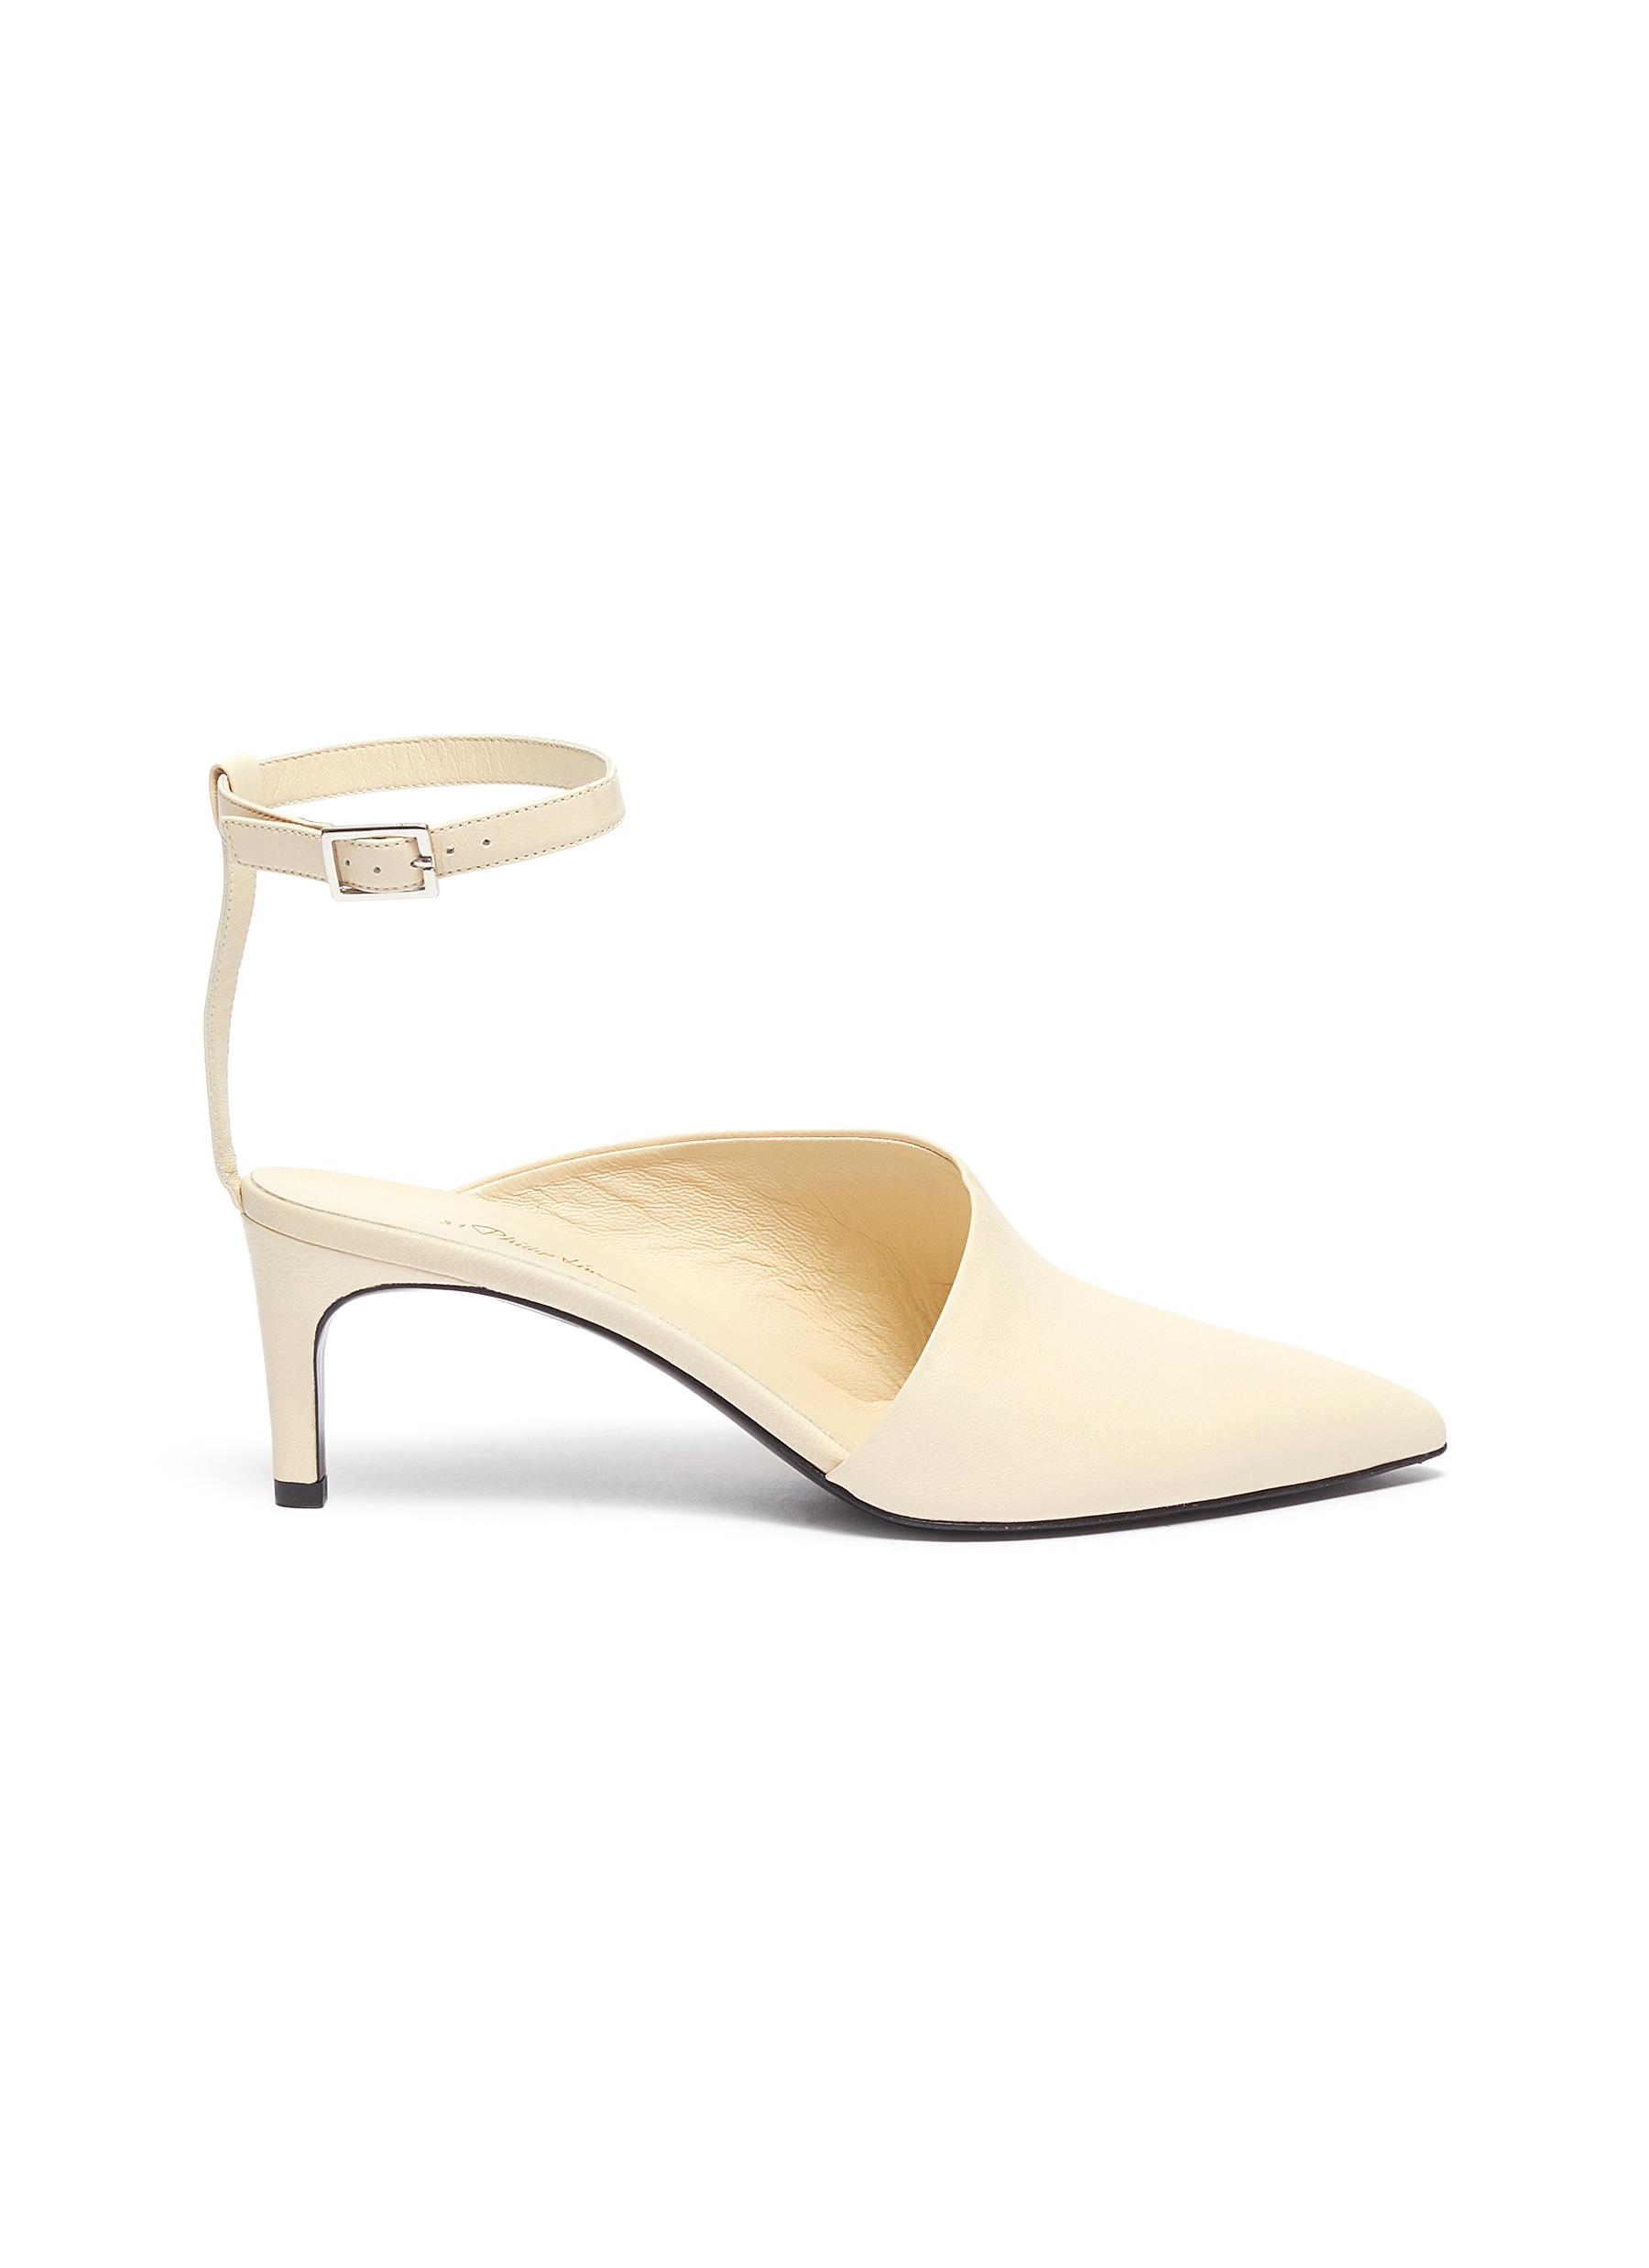 Nina slanted vamp leather ankle strap pumps by 3.1 Phillip Lim